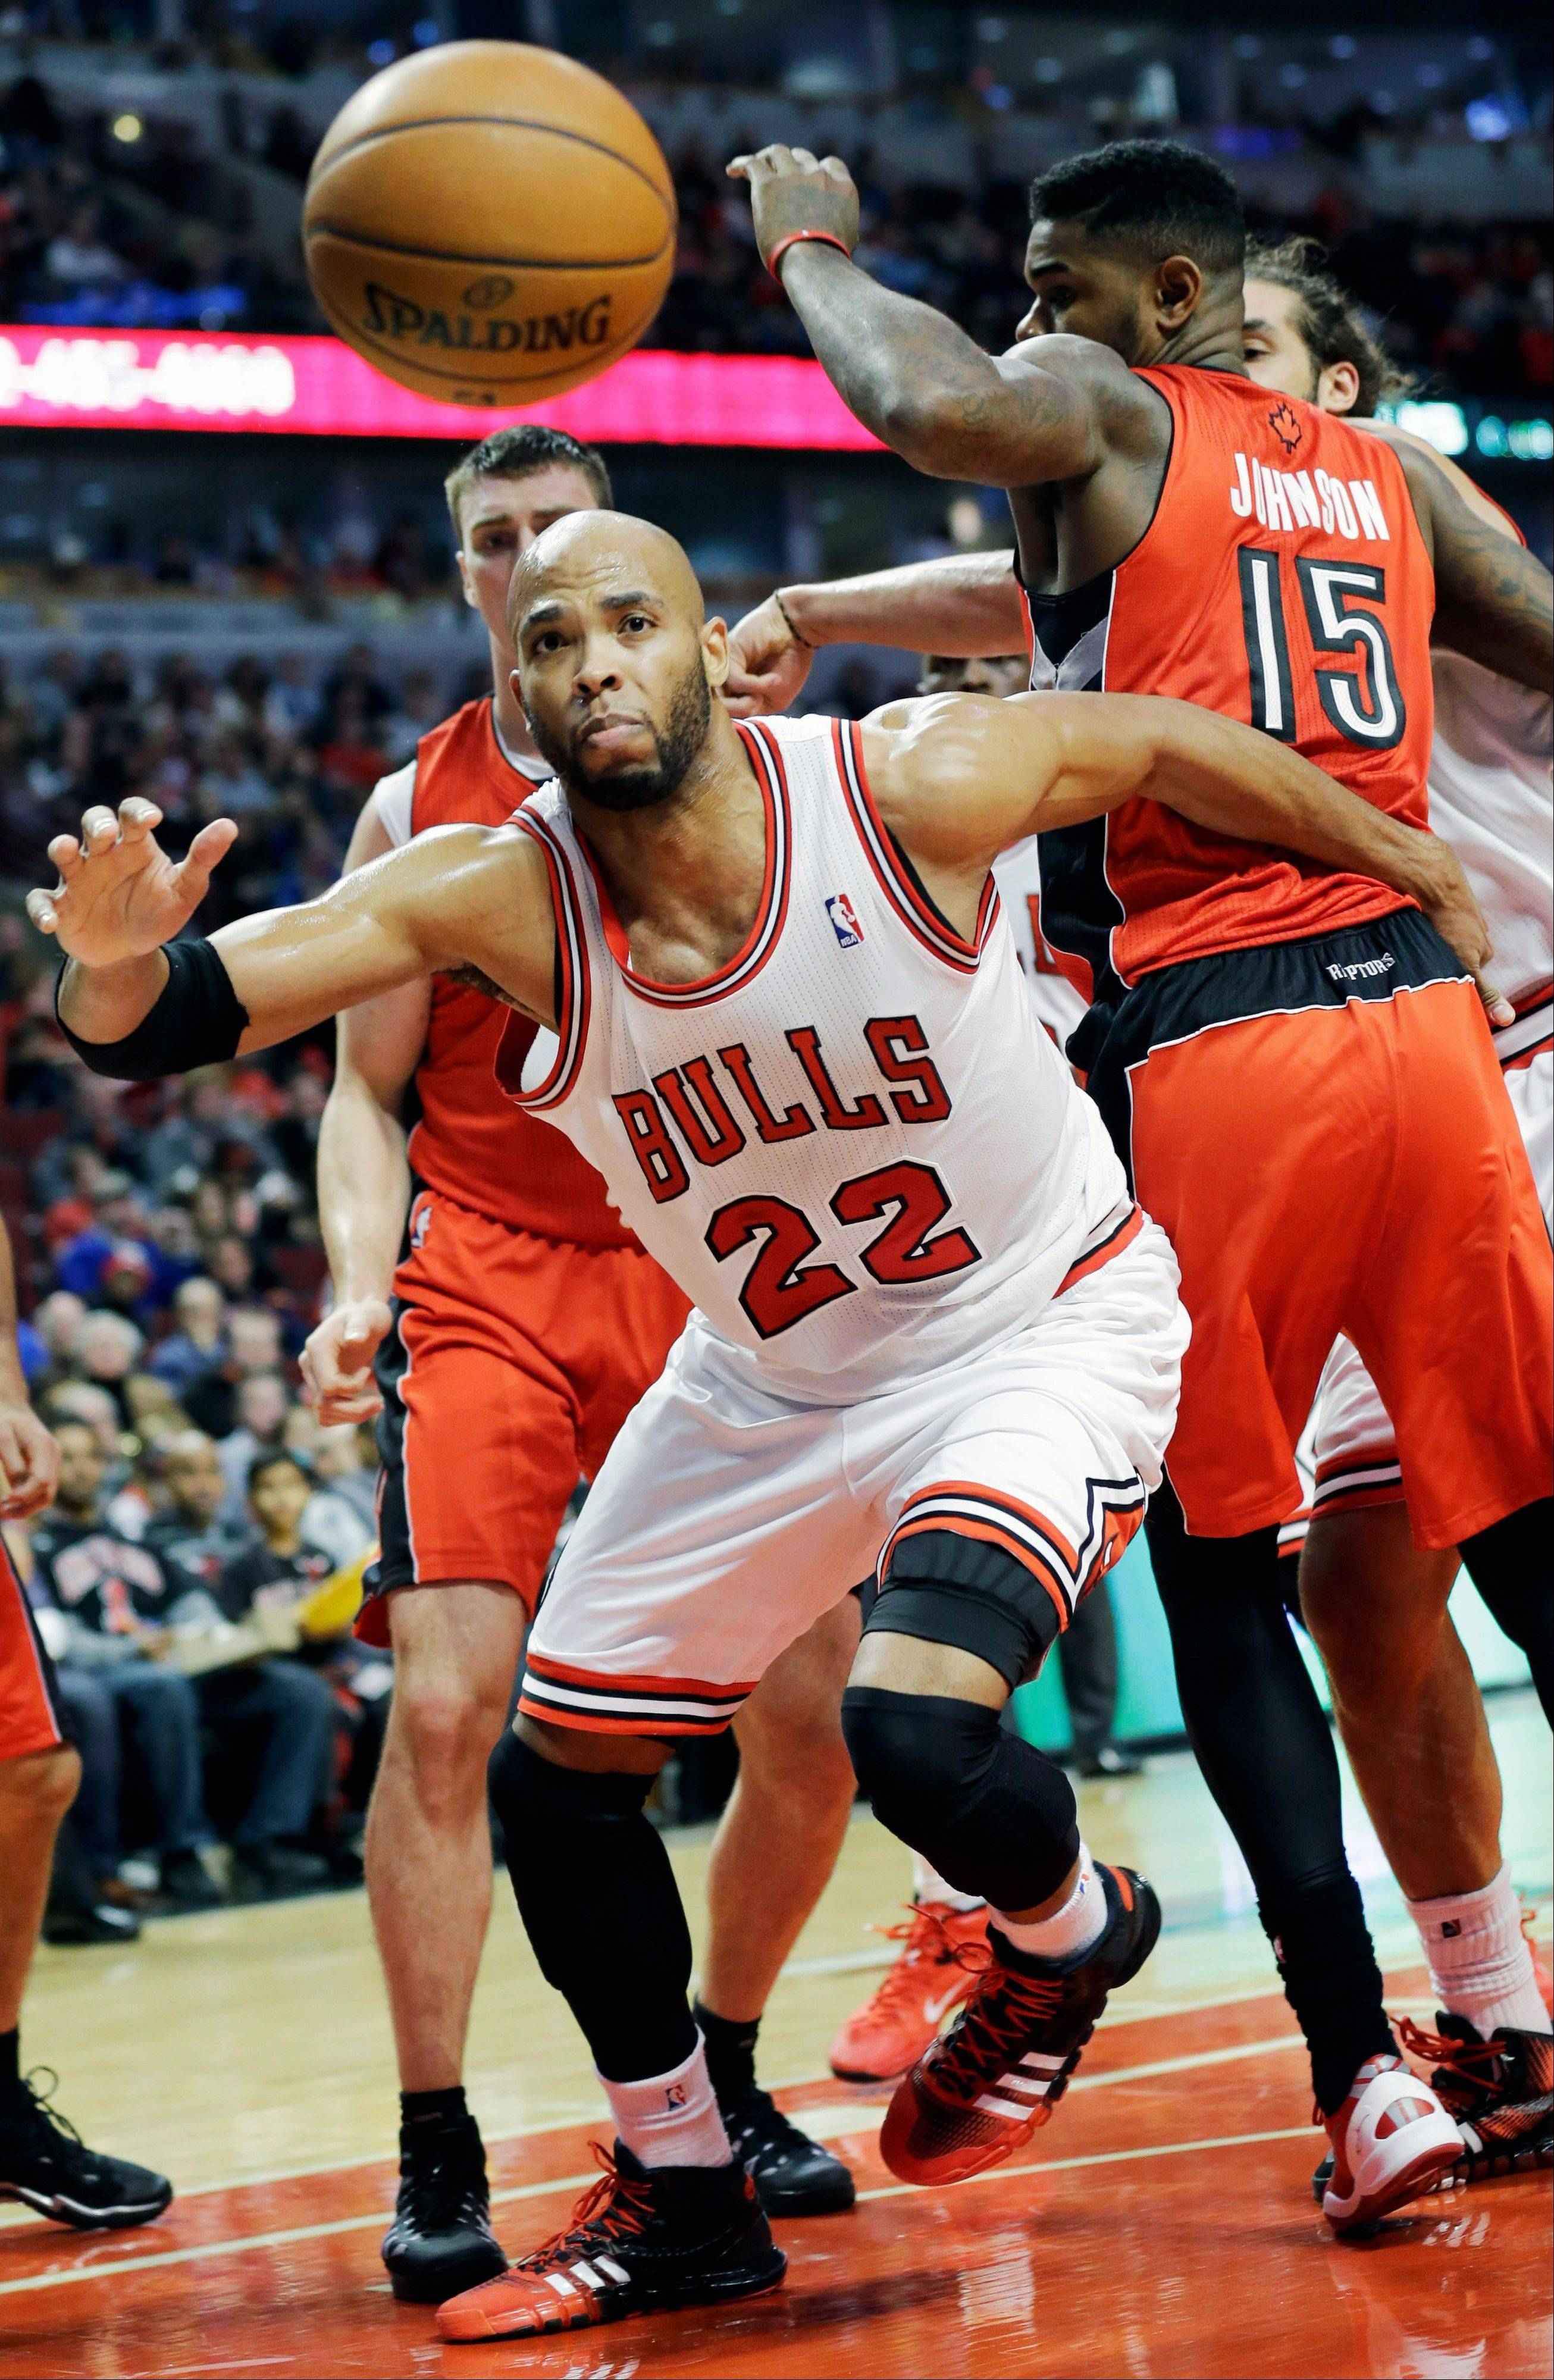 Taj Gibson (22) chases a loose ball during the second half of an NBA basketball game against the Toronto Raptors in Chicago on Saturday, Dec. 14, 2013. The Raptors won 99-77.